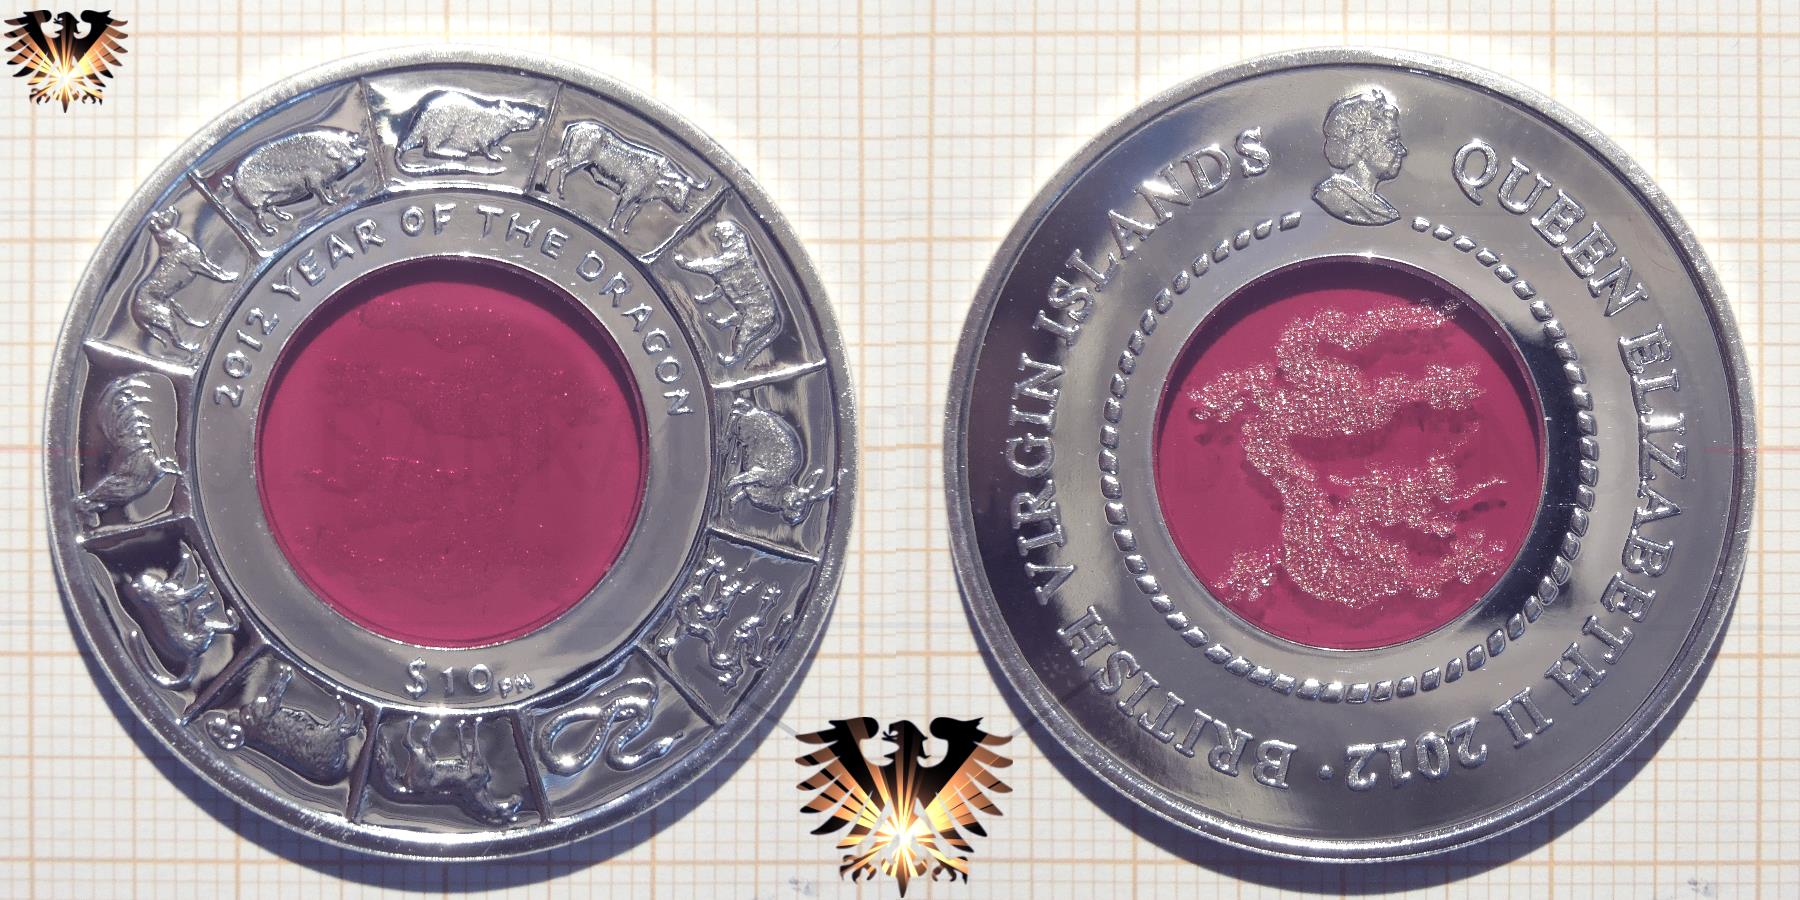 British Virgin Islands, 10$, 2012, Year of the Dragon   © goldankaufstelle-bayern.de